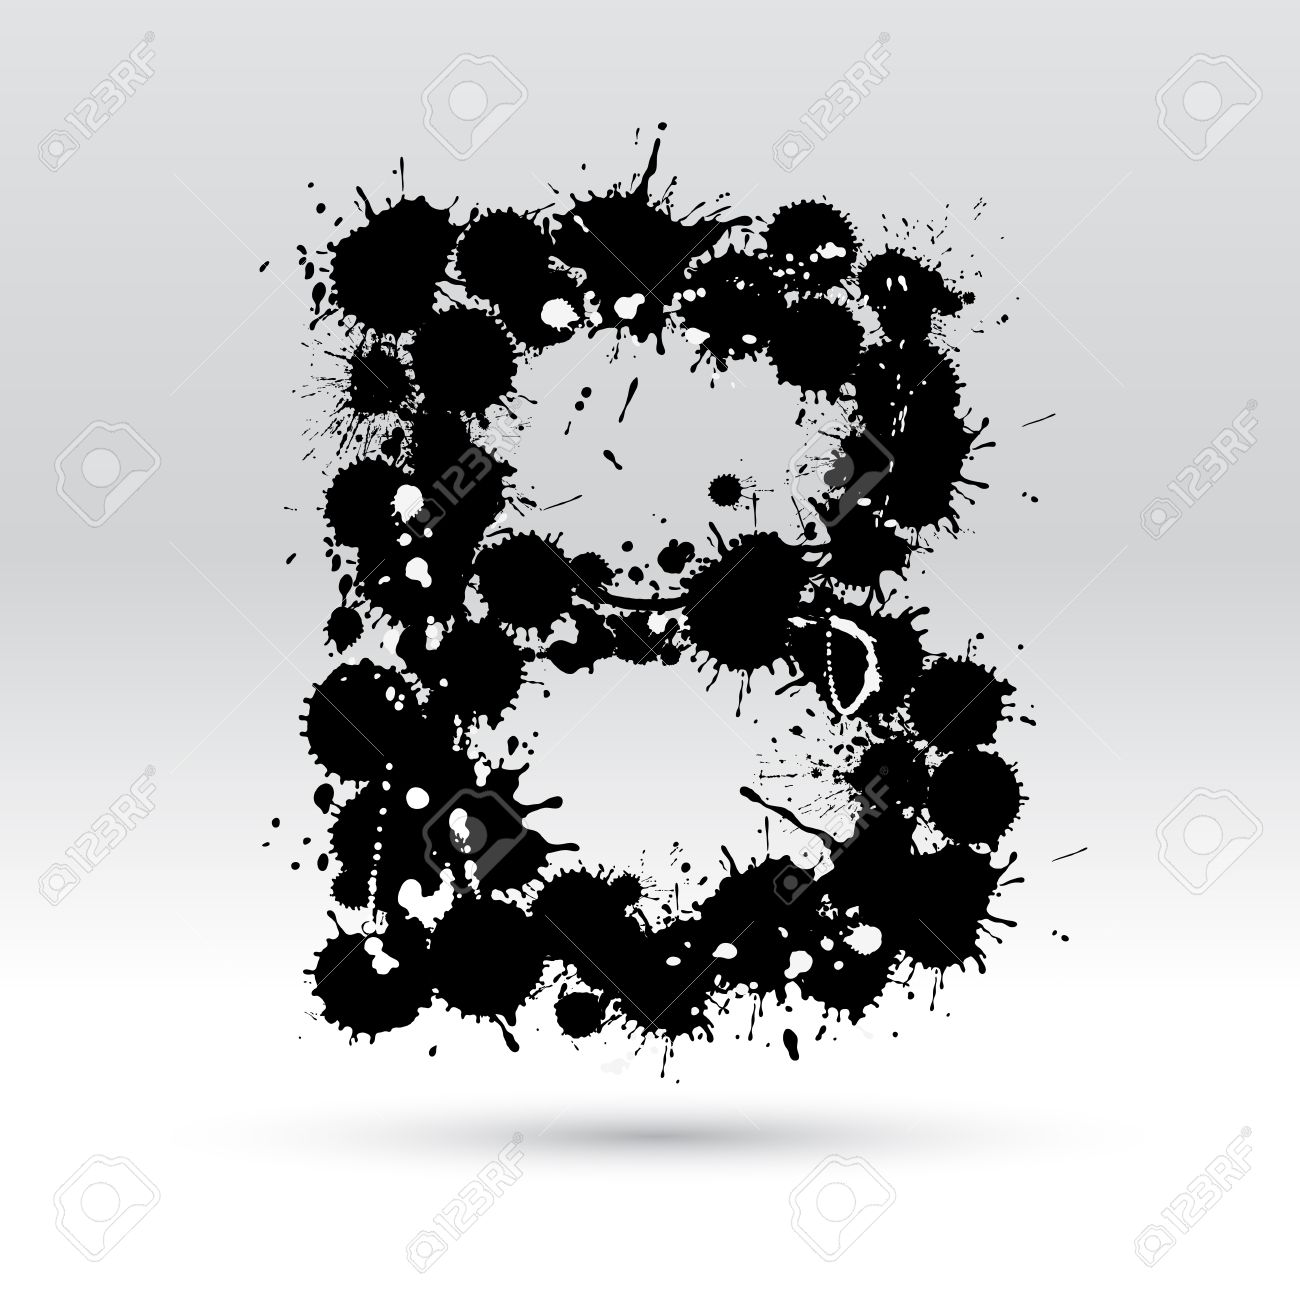 Letter B Formed By Black And White Ink Blots Royalty Free Cliparts